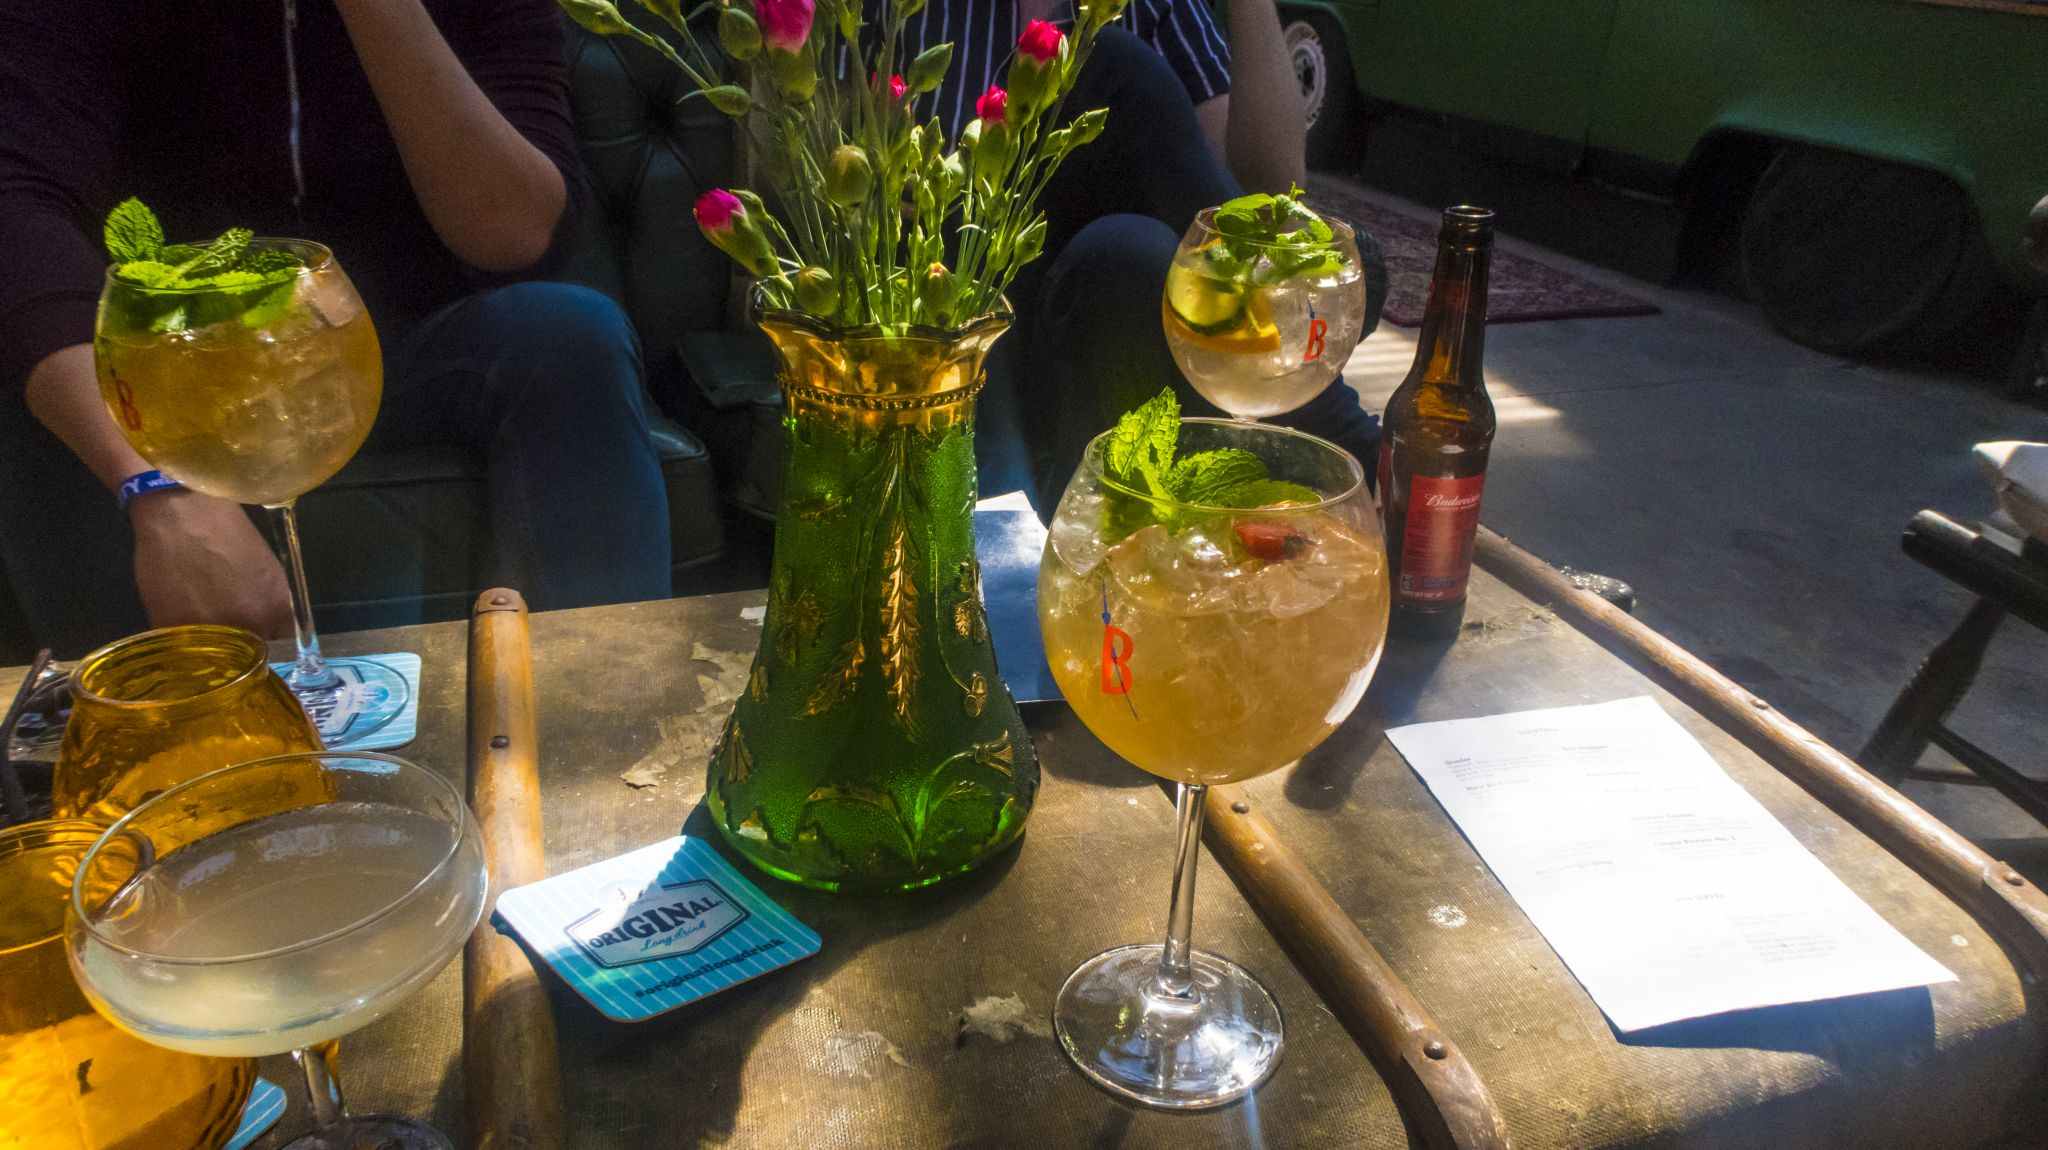 Liverpool Botanical Gin Garden Menu Review